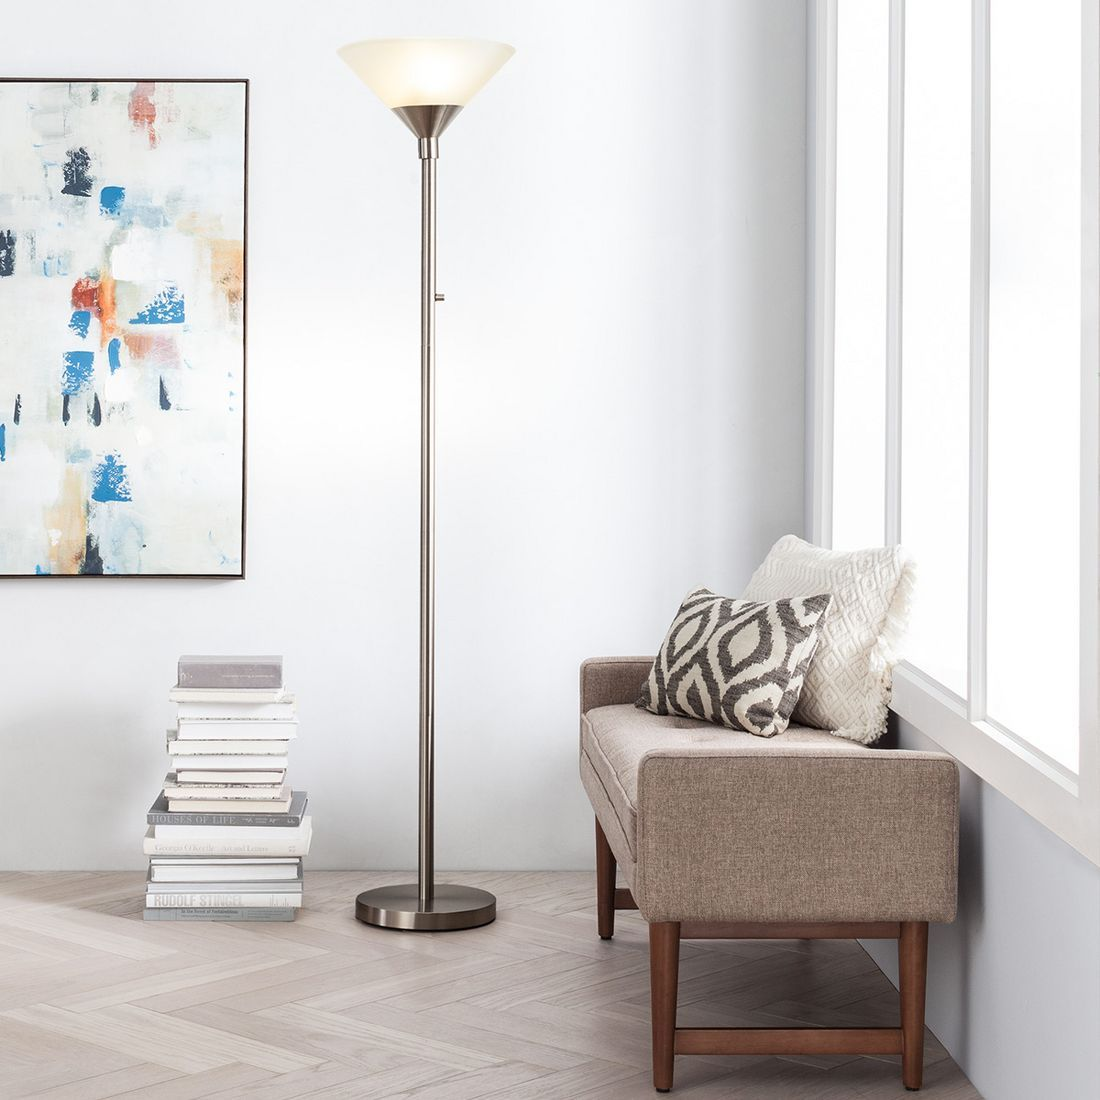 Shop Target for Floor Lamps you will love at great low